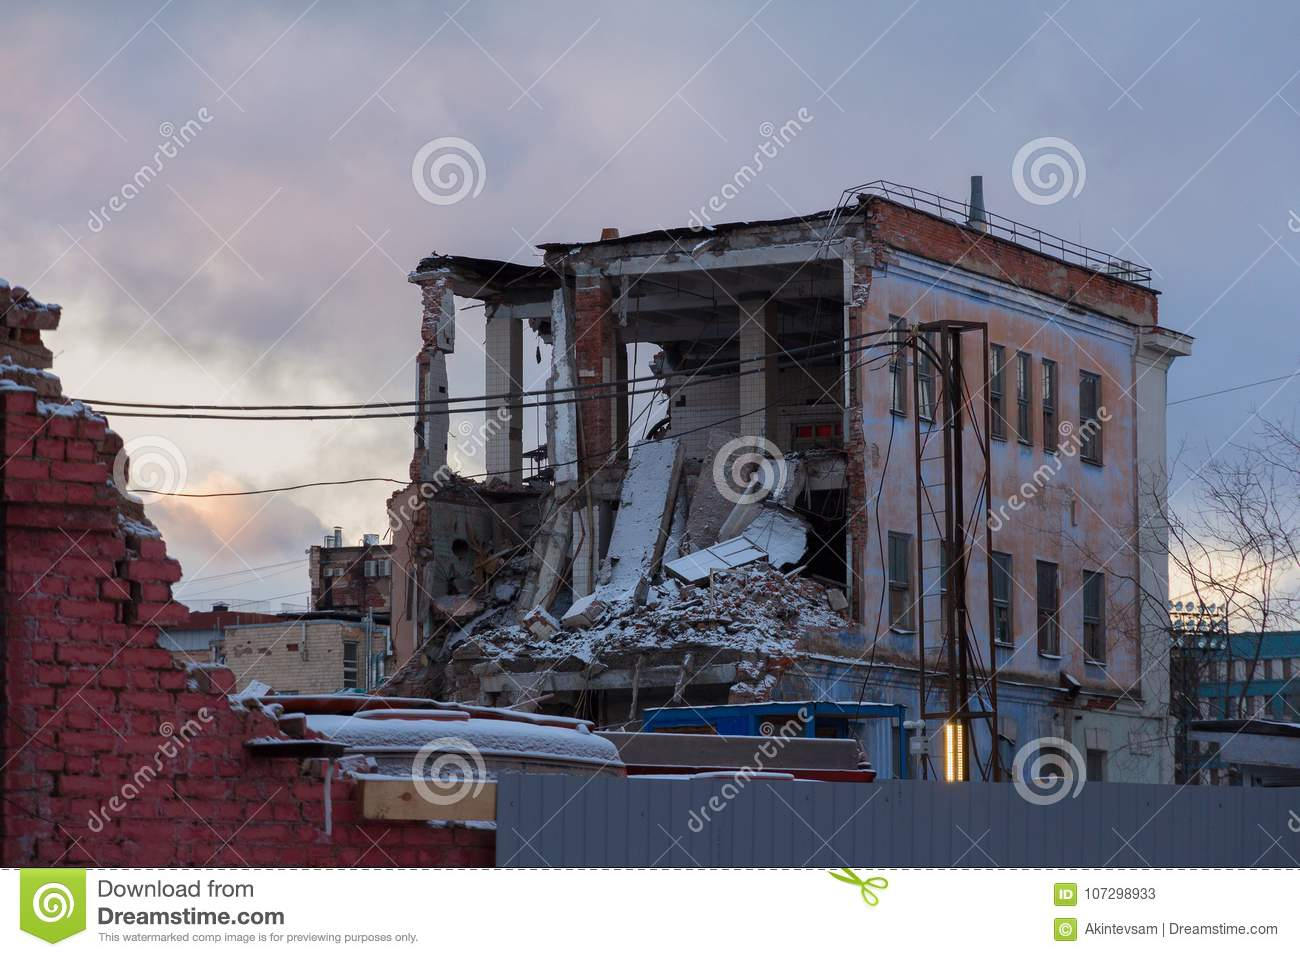 Demolition of an old brick house